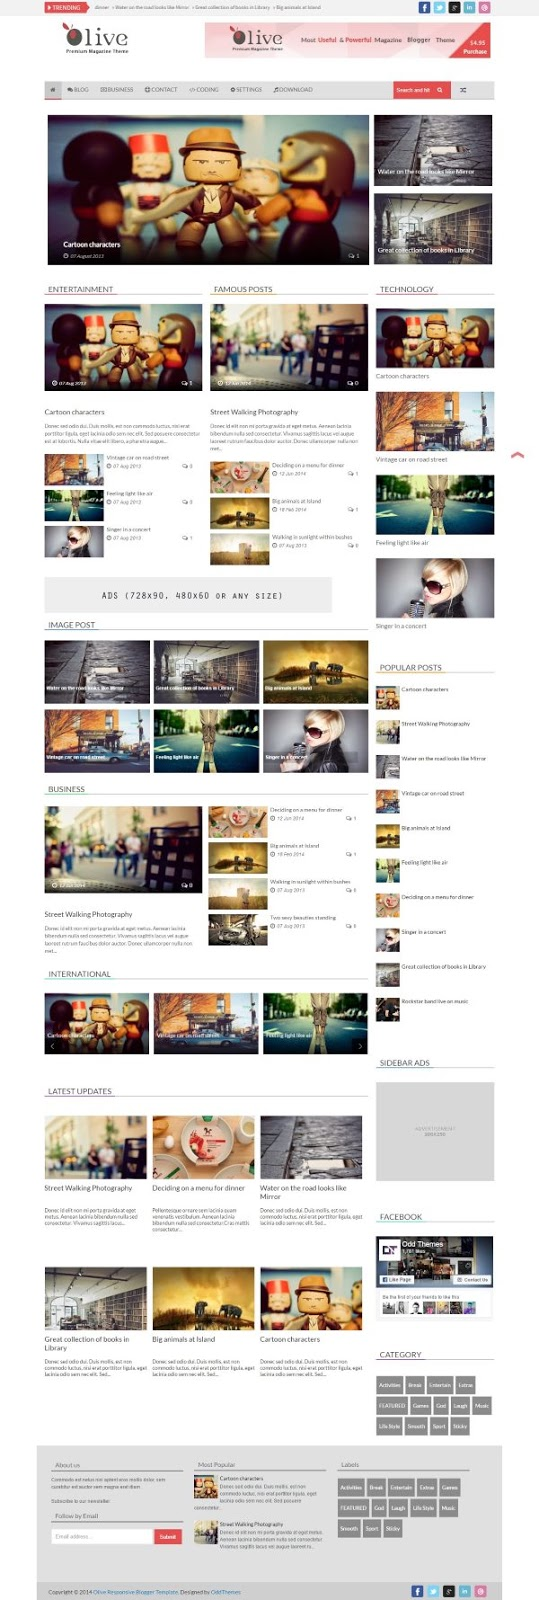 Download Olive Responsive (News & Magazine) Blogger Template. User friendly  SEO friendly  Mobile friendly  Schema including  Adsense ready  Coloum  Related posts widget  Custom contact form  Responsive design  Responsive navigation bar  Thumbnail with read more  Social sharing button  Search engine optimization  Footer links.